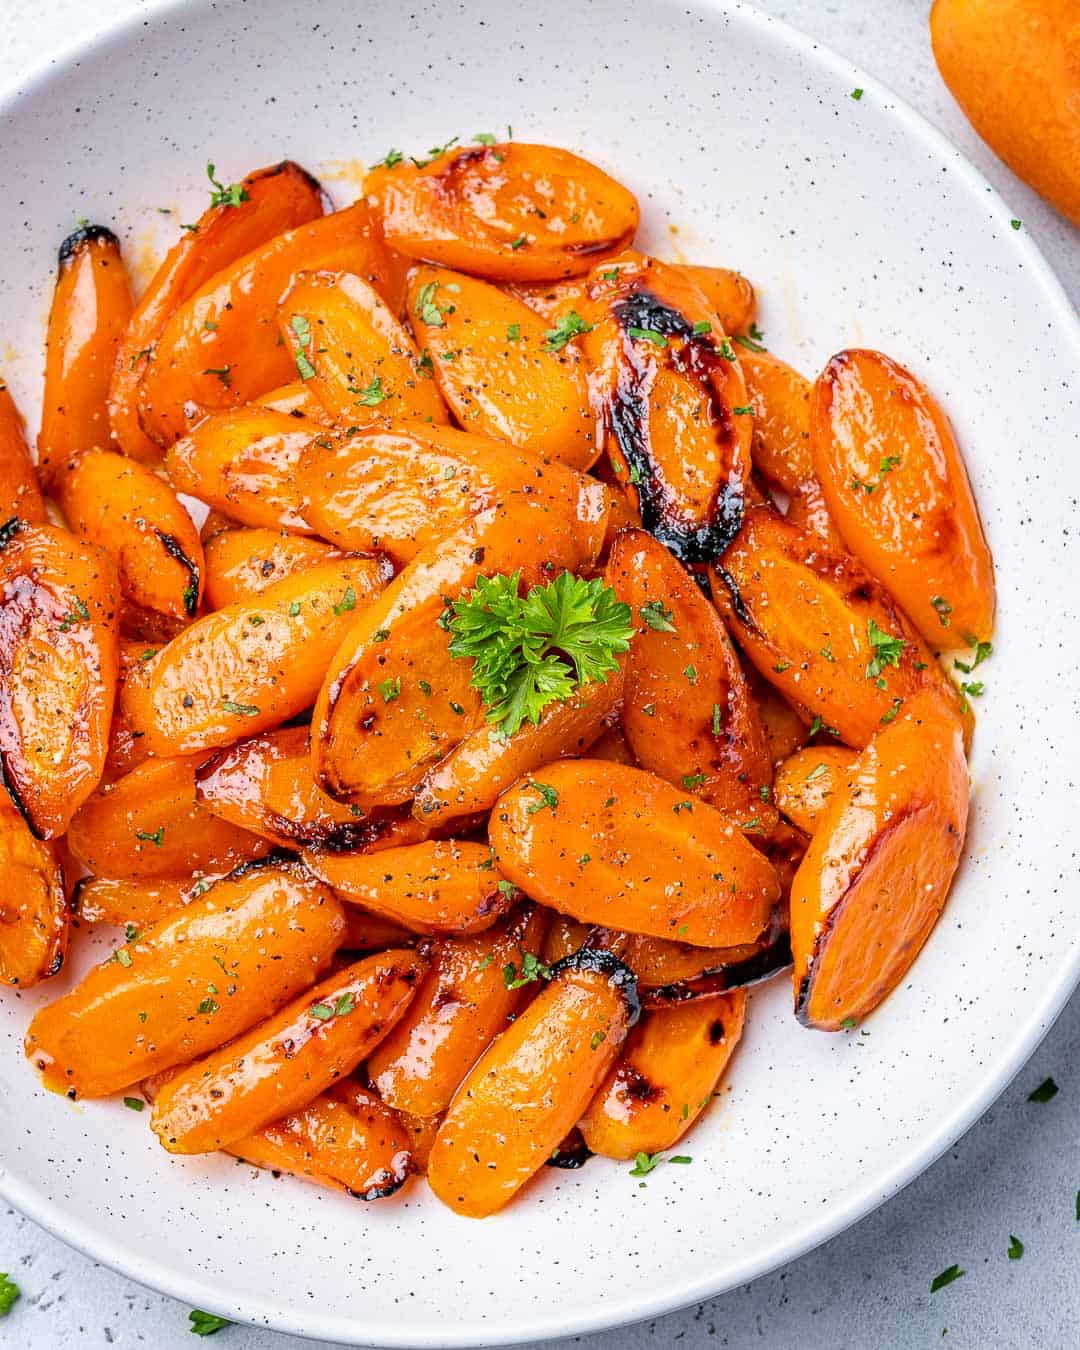 top view of glazed carrots in a white plate